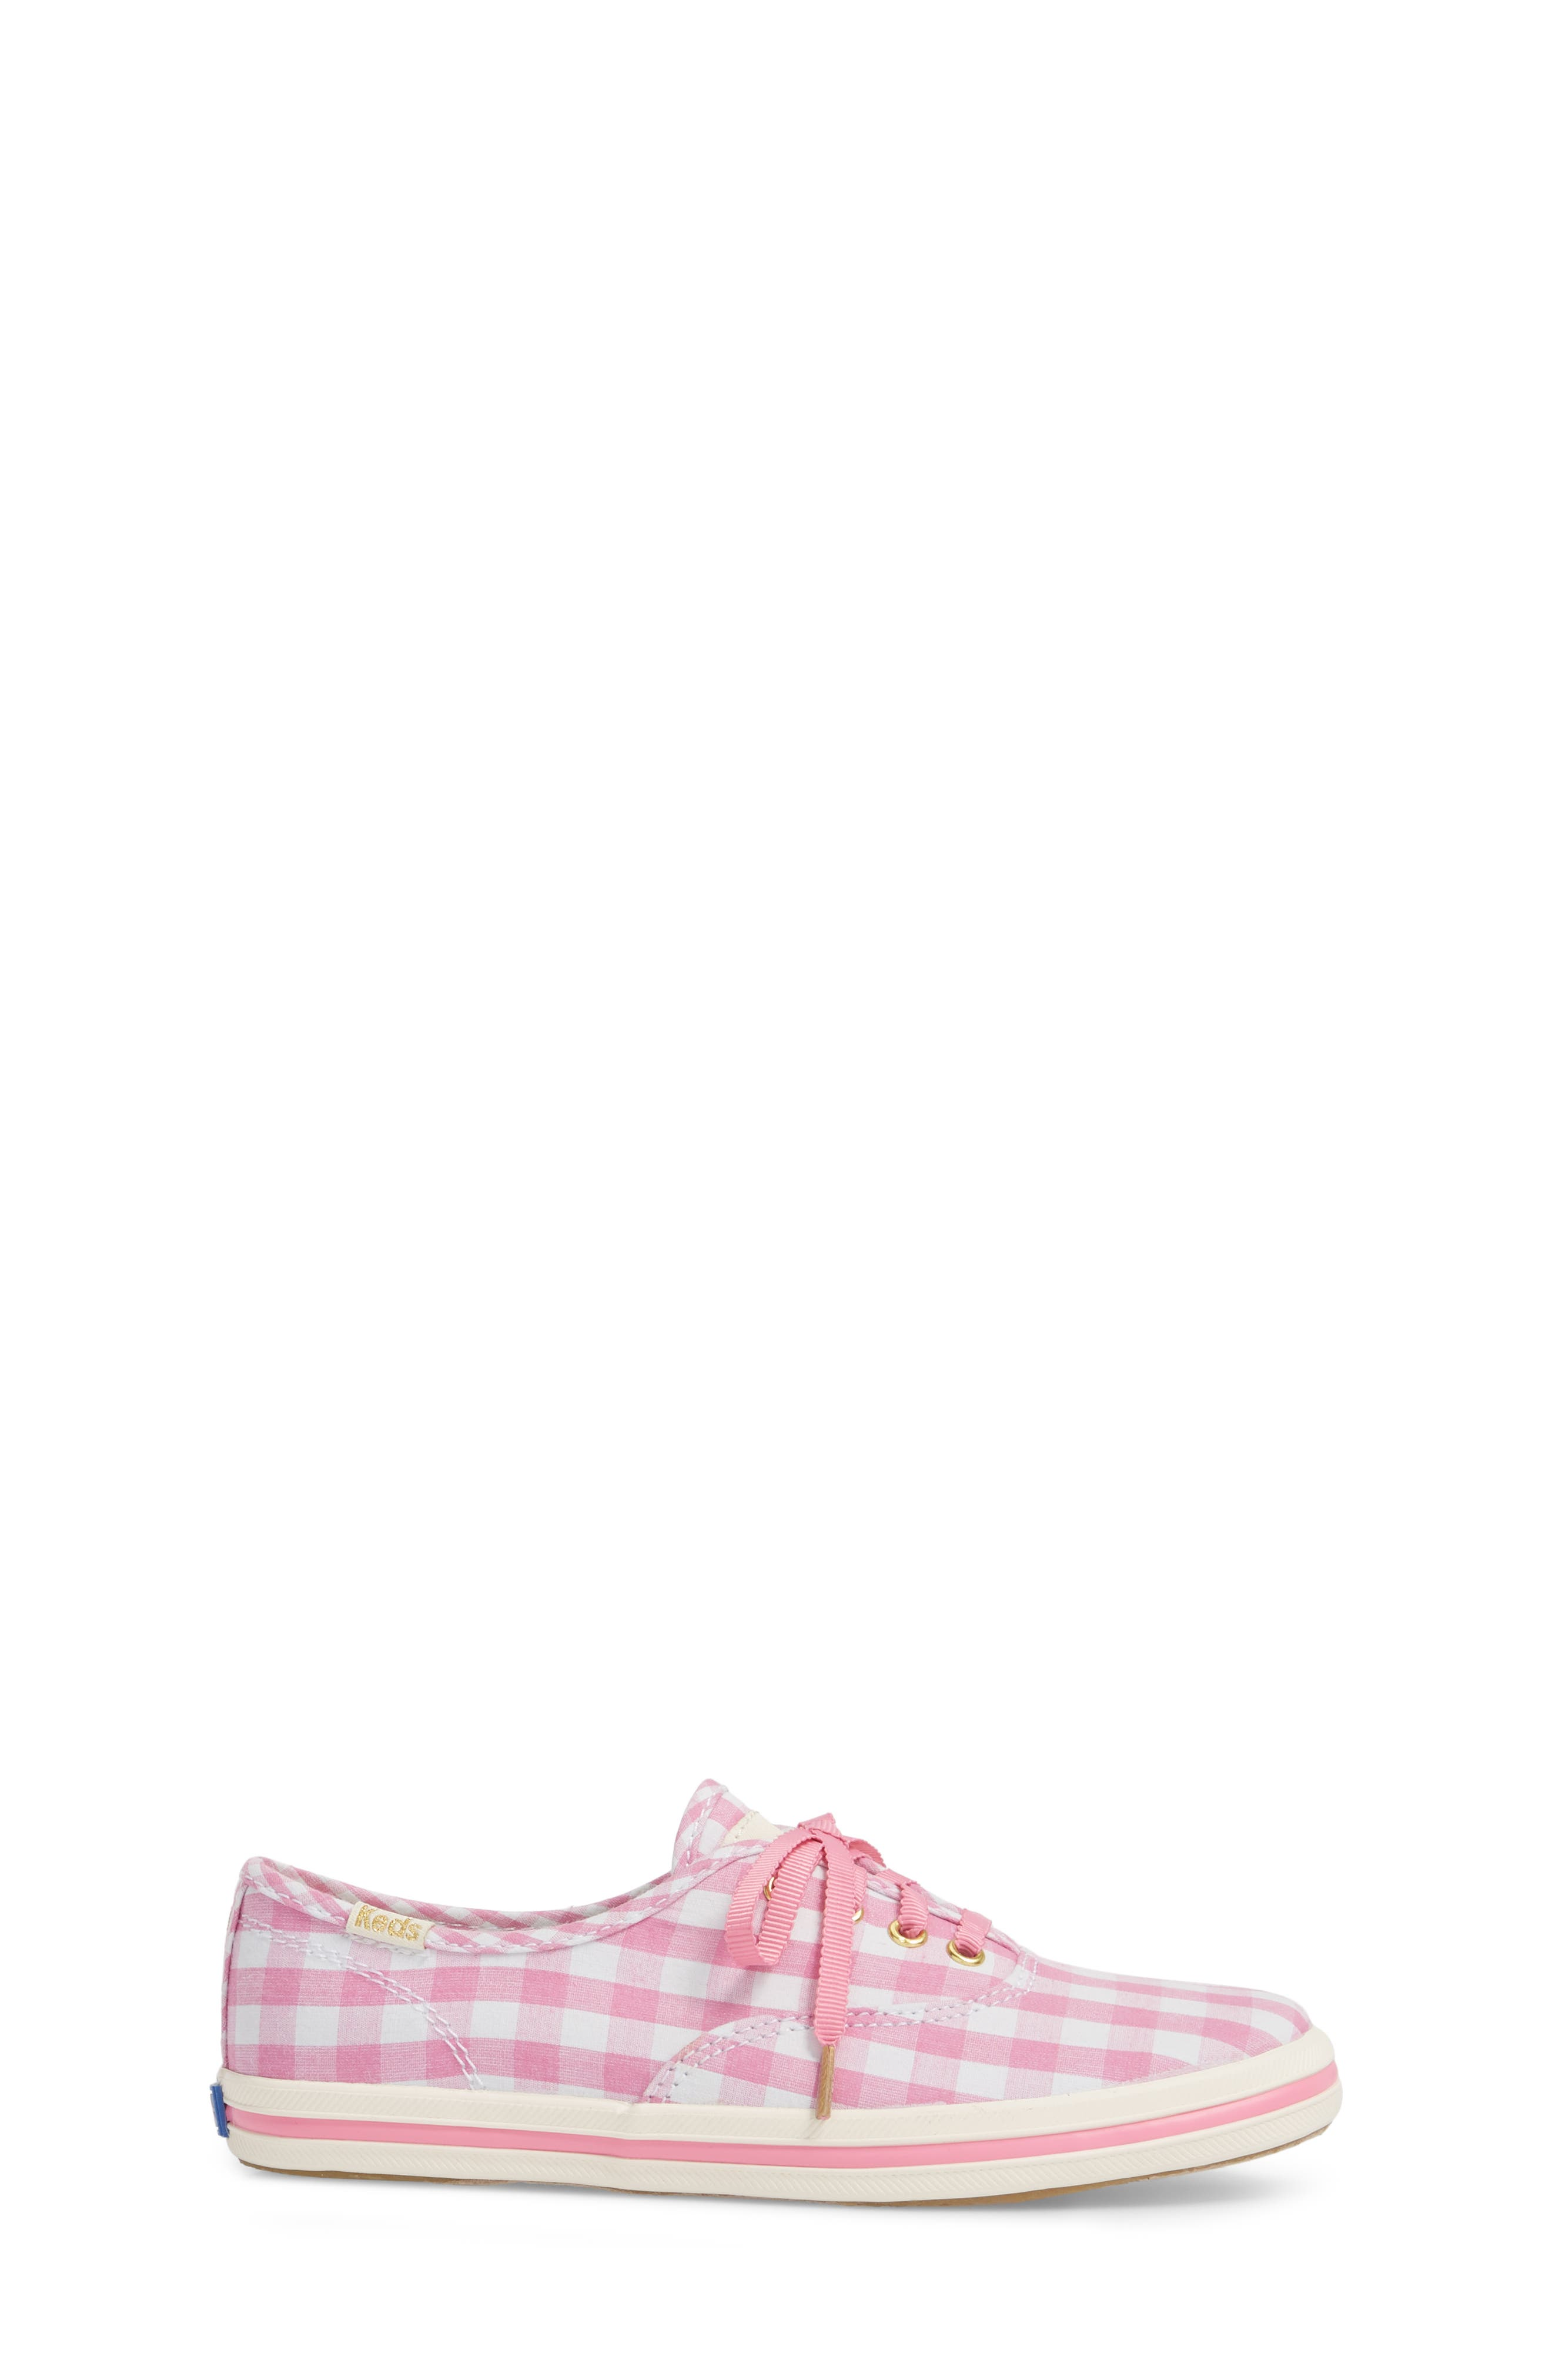 x kate spade new york champion gingham lace-up shoe,                             Alternate thumbnail 3, color,                             Pink Gingham